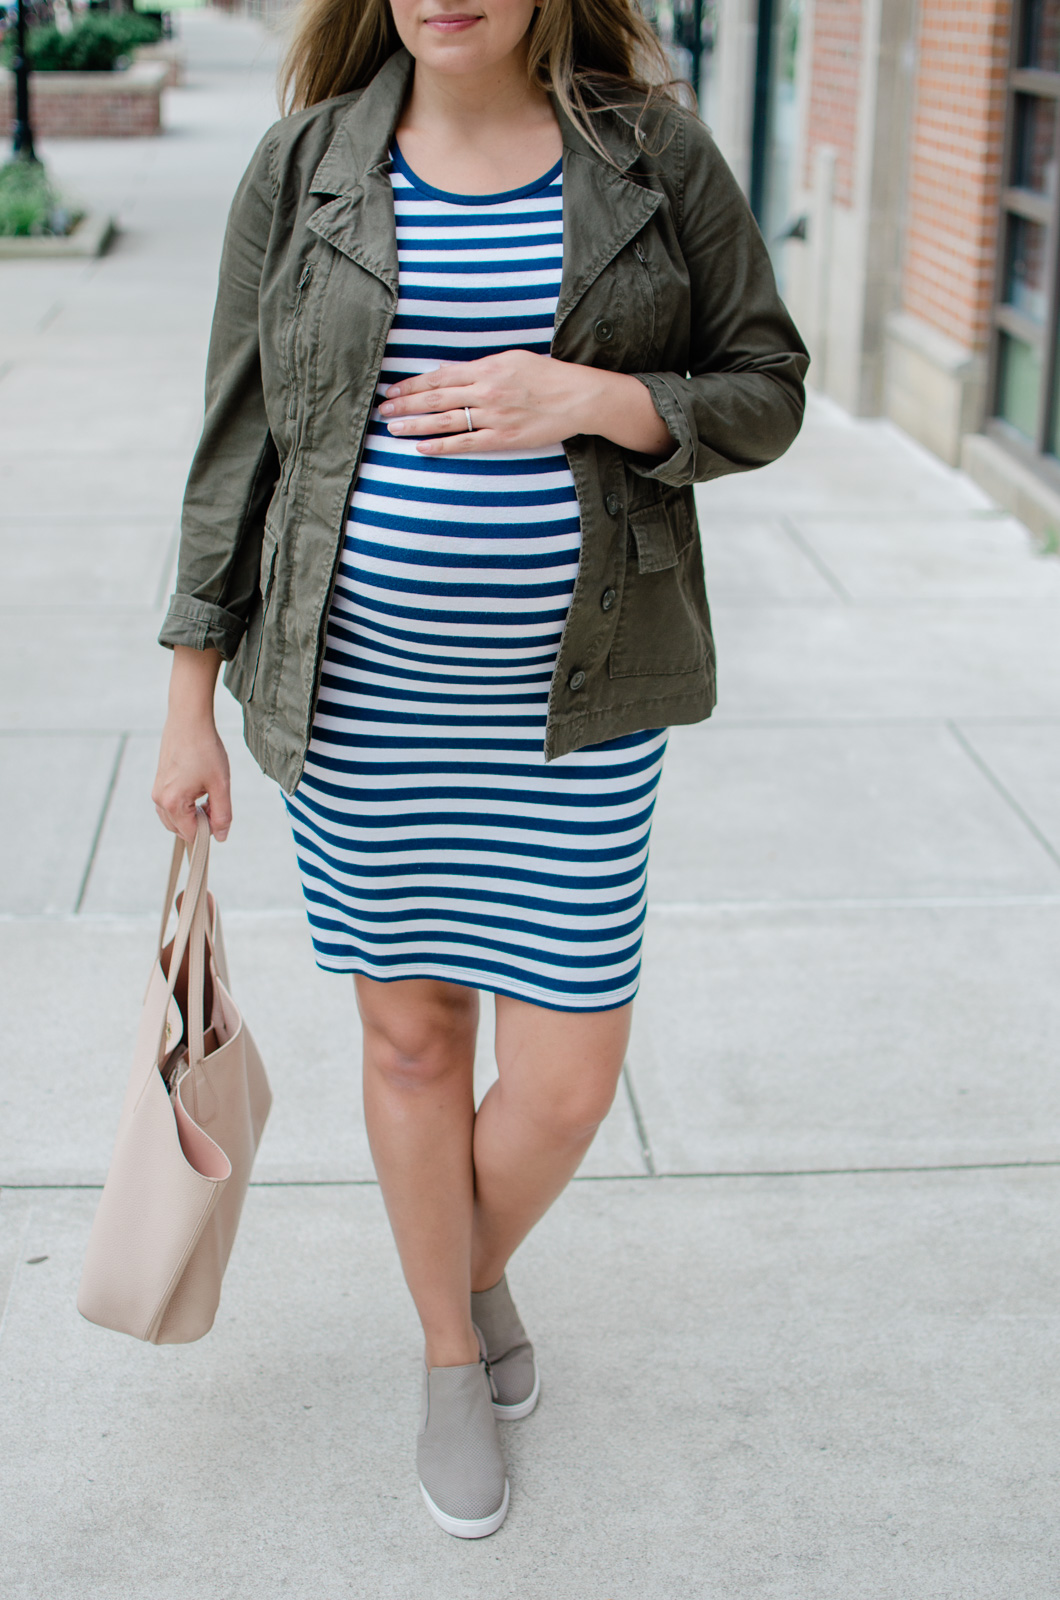 casual maternity style - a favorite fall outfit idea with cargo jacket and stripe dress | bylaurenm.com